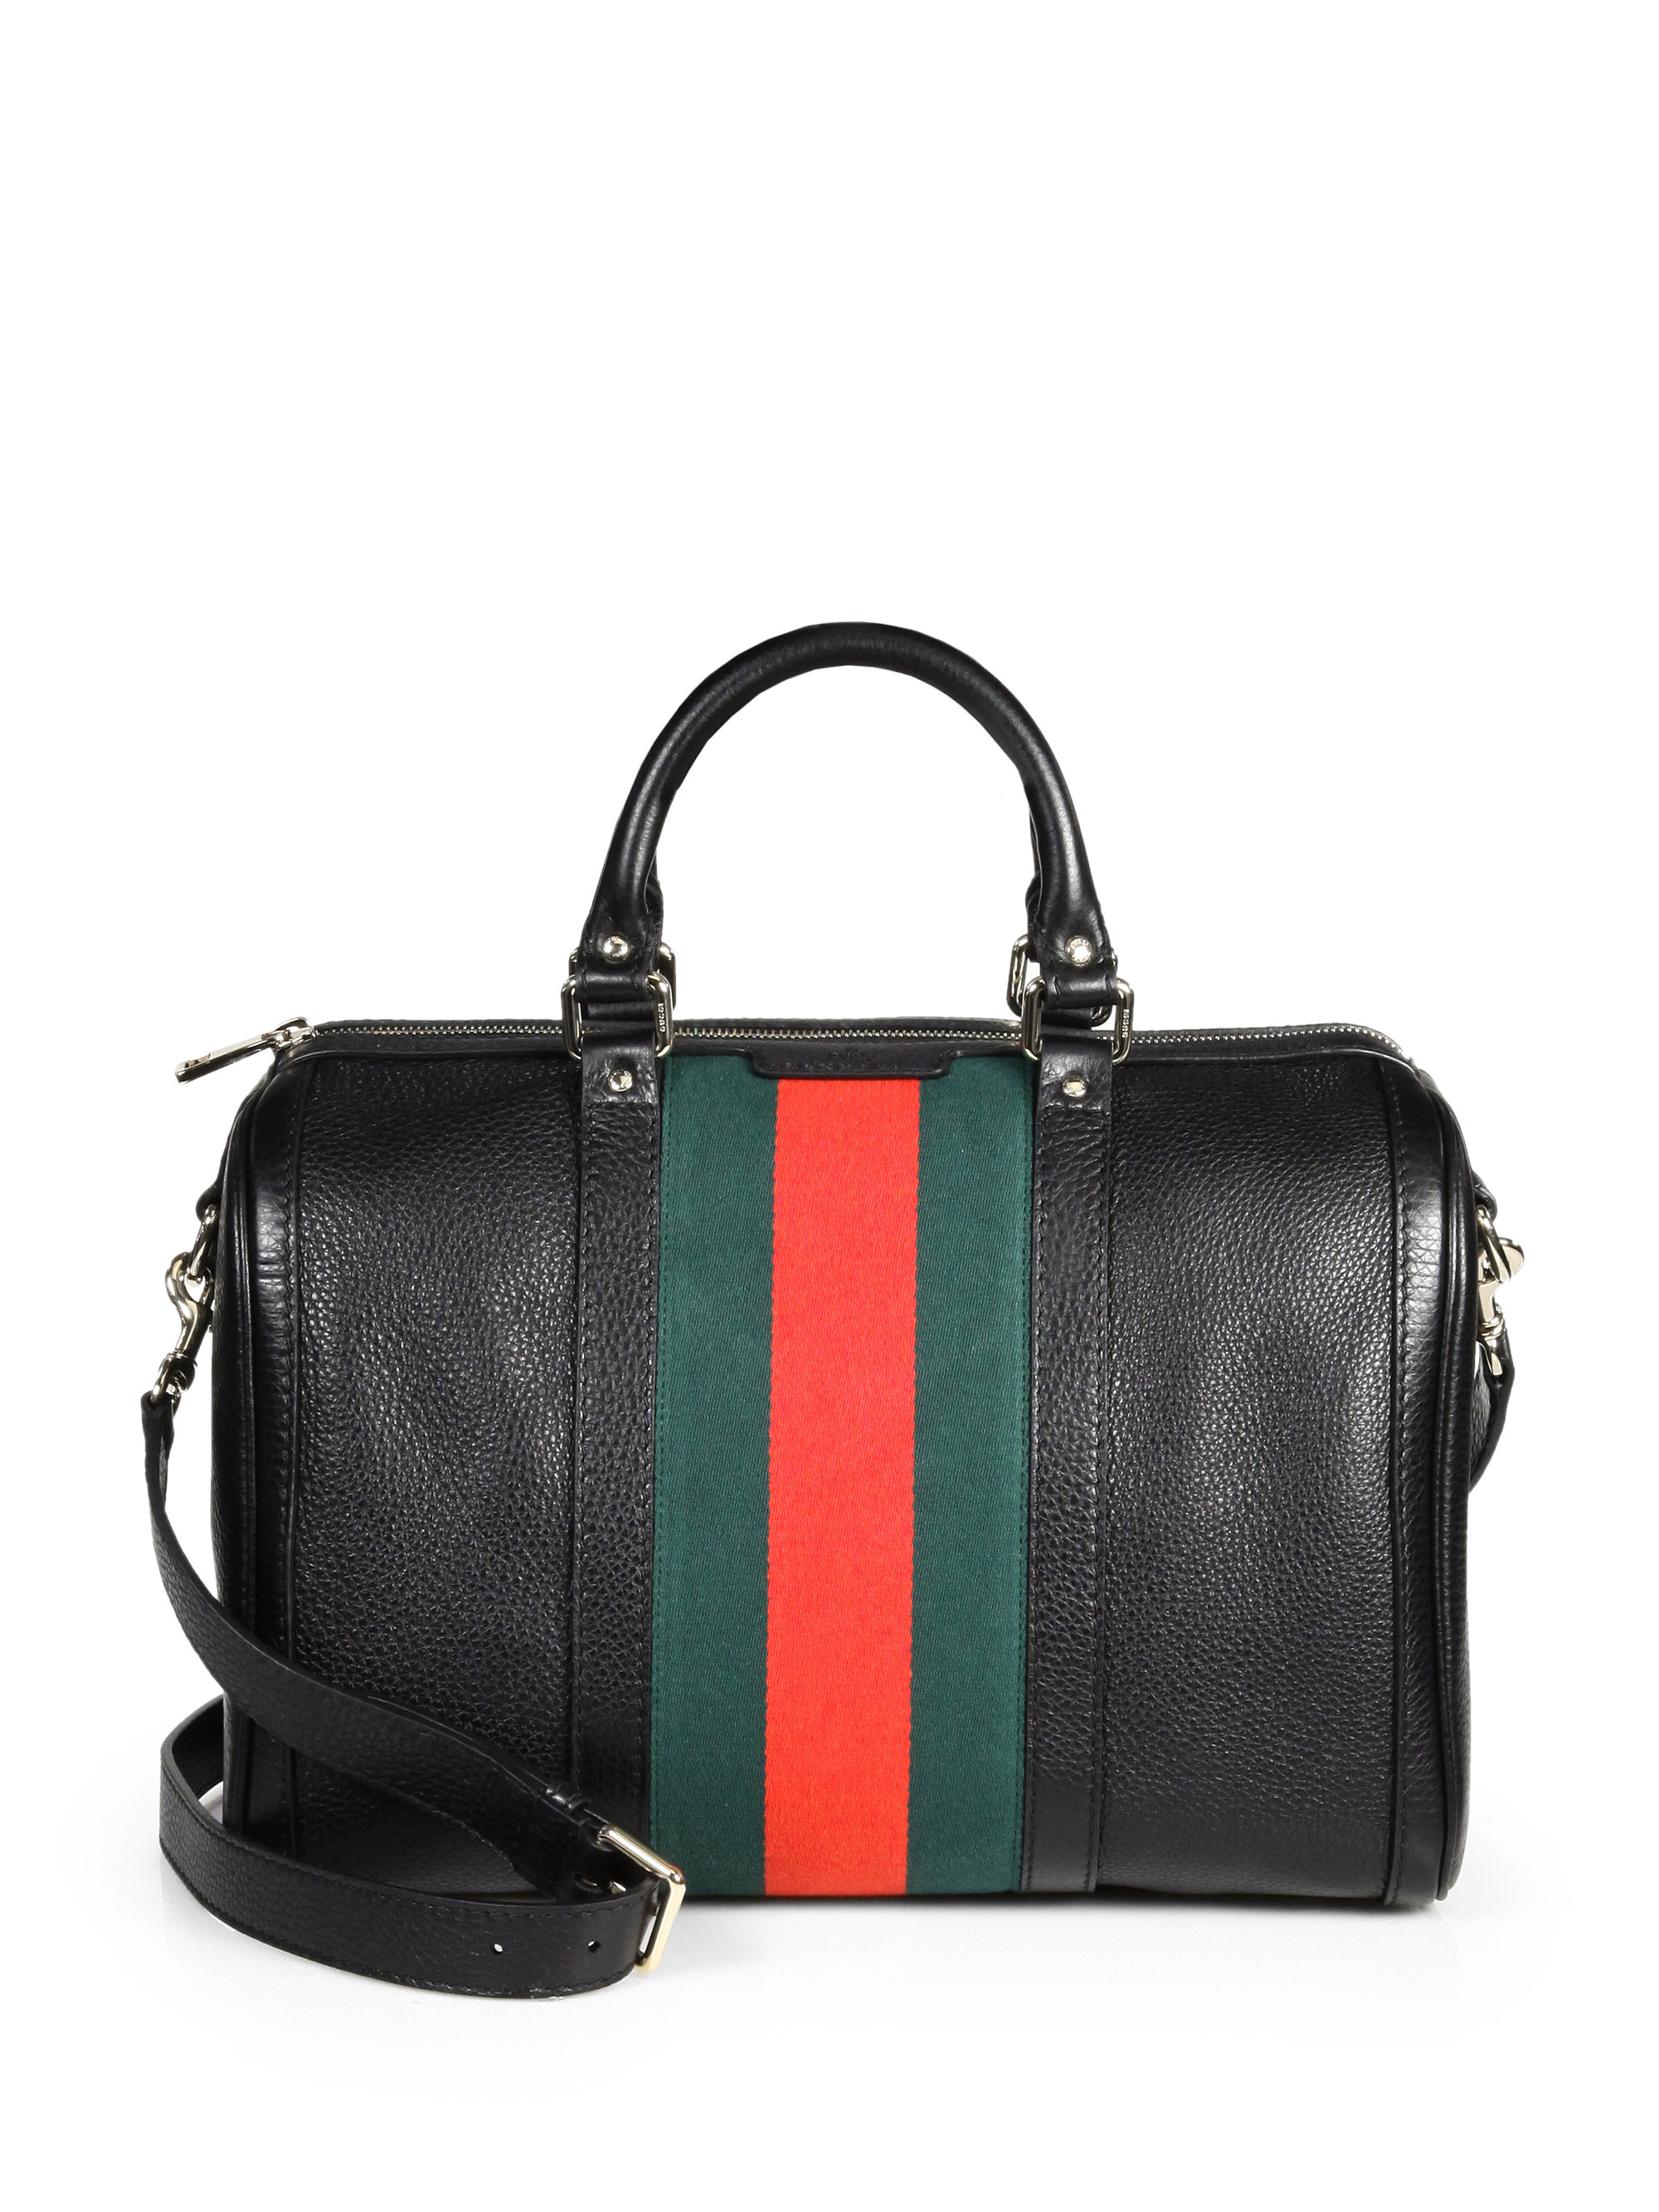 d216de1b9d46be Gucci Boston Bag Black | Stanford Center for Opportunity Policy in ...